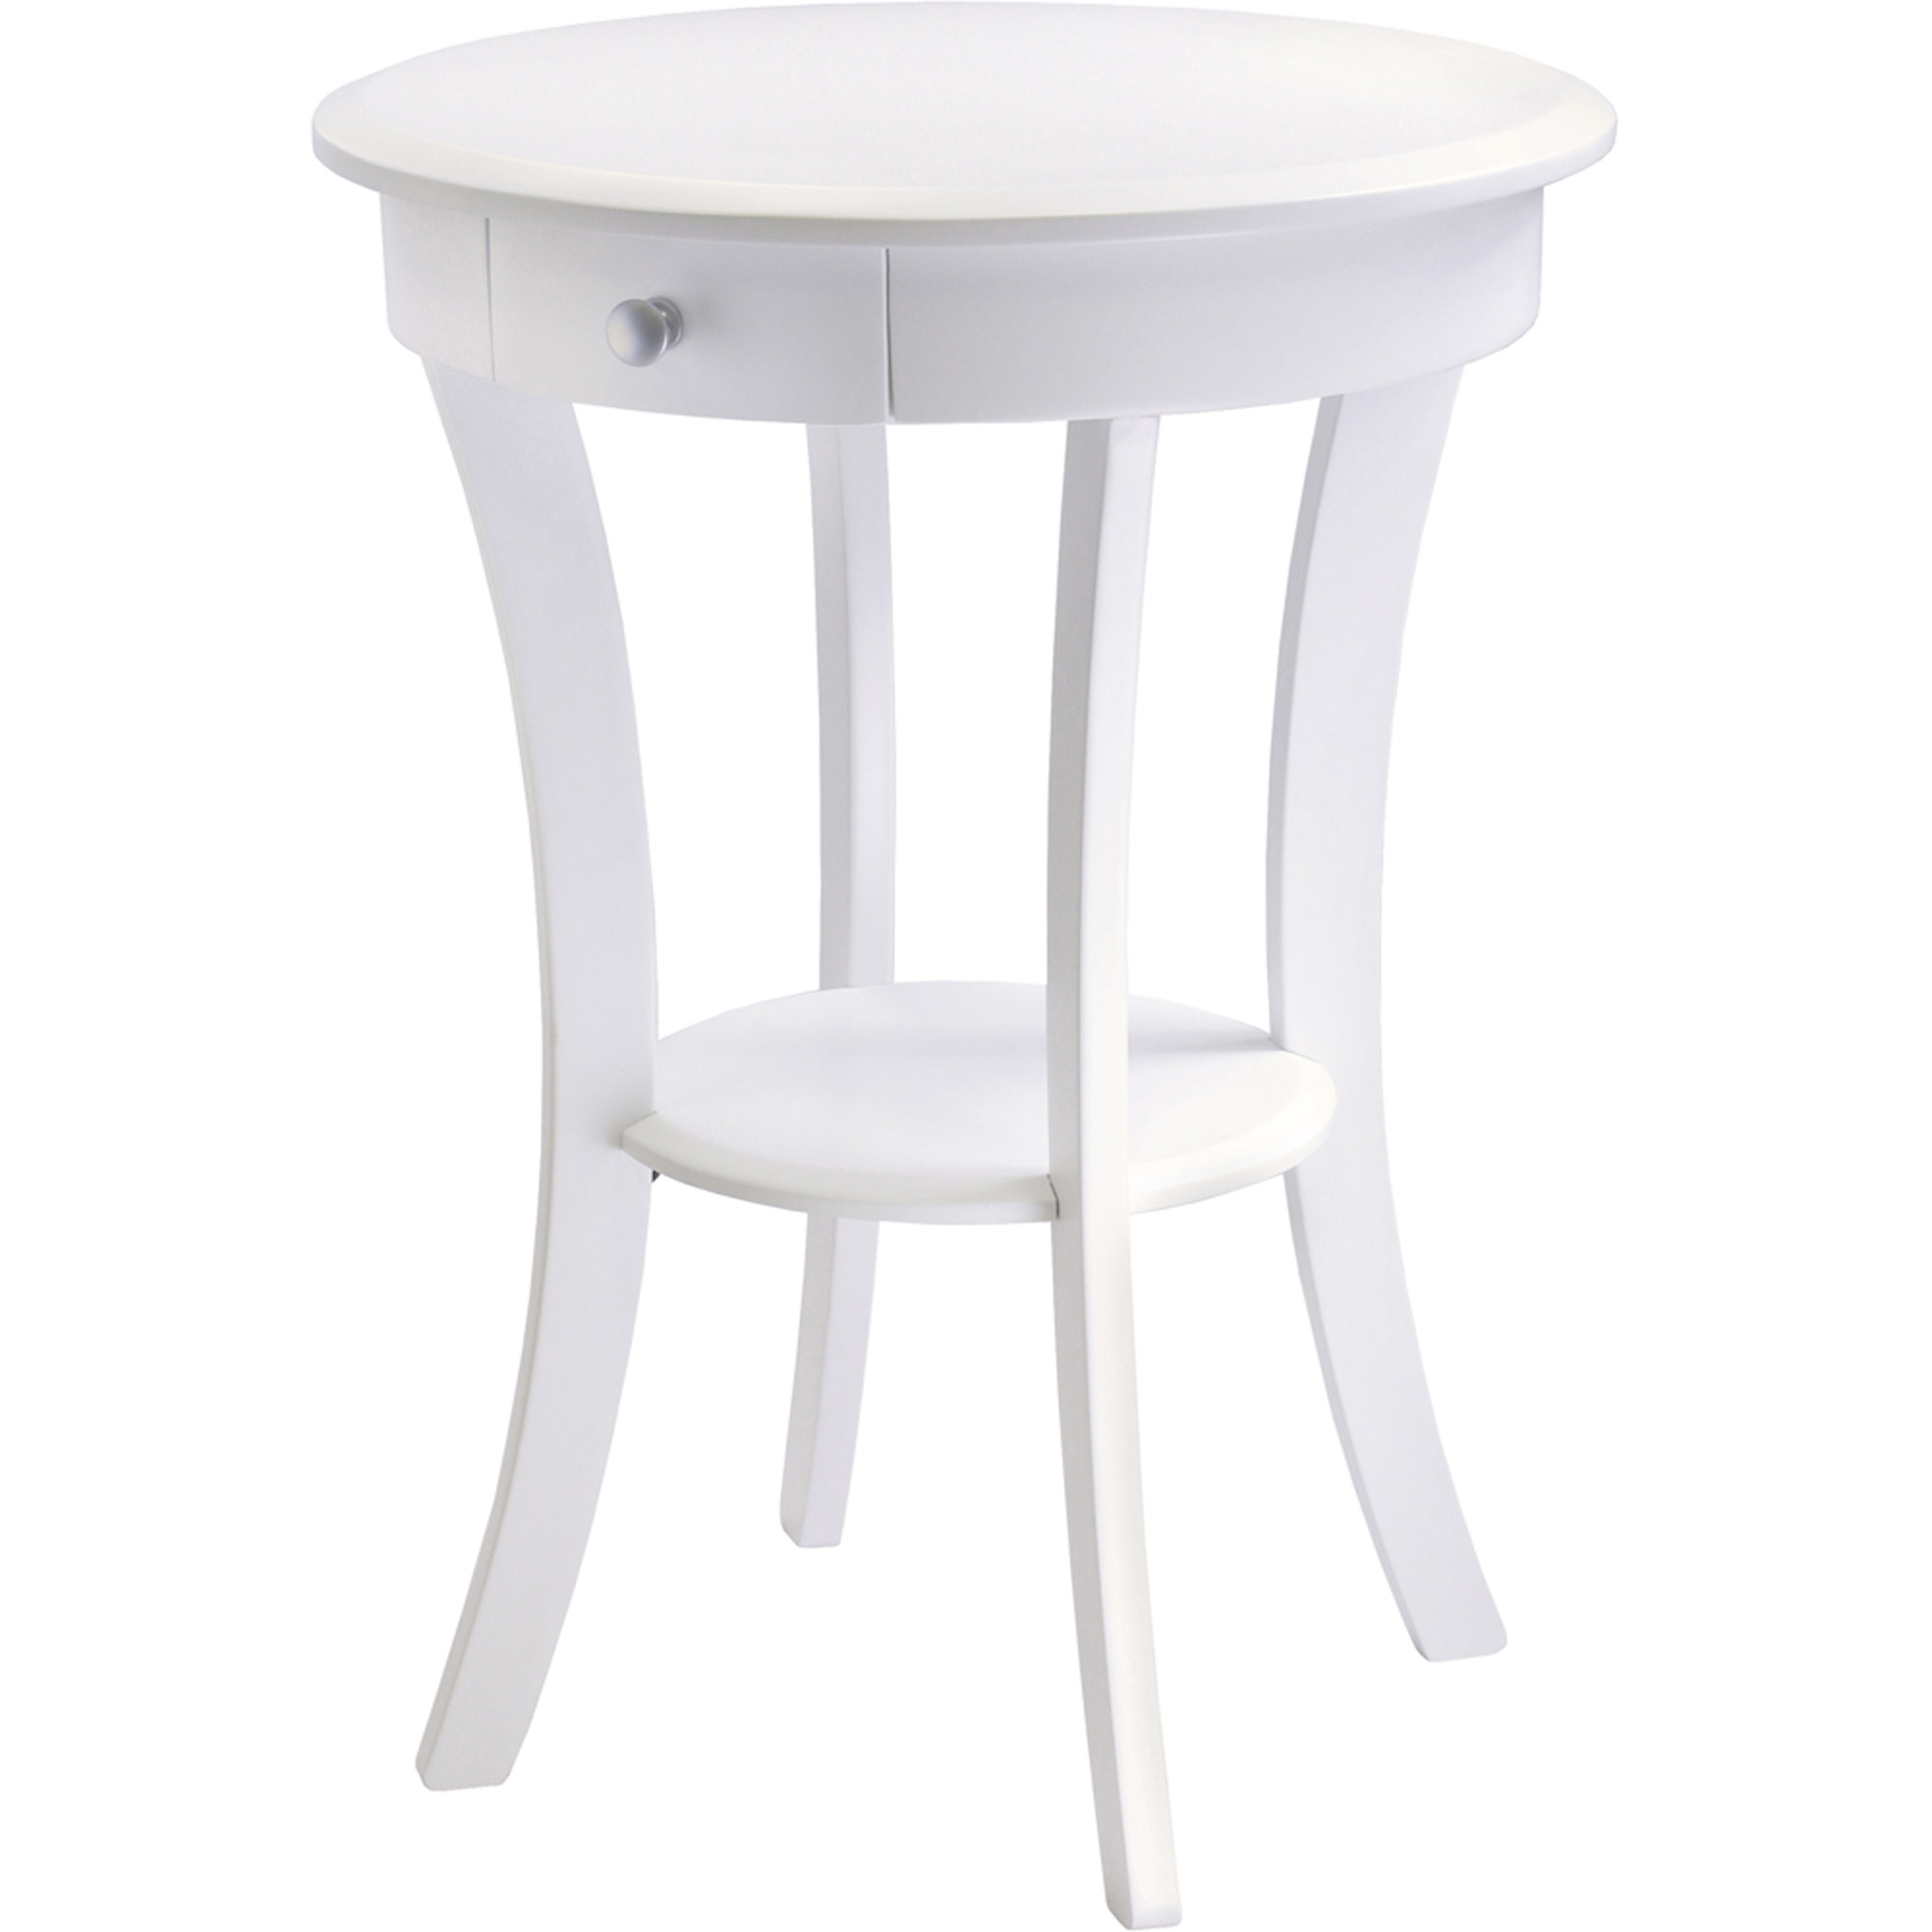 Sasha round accent table walmart com